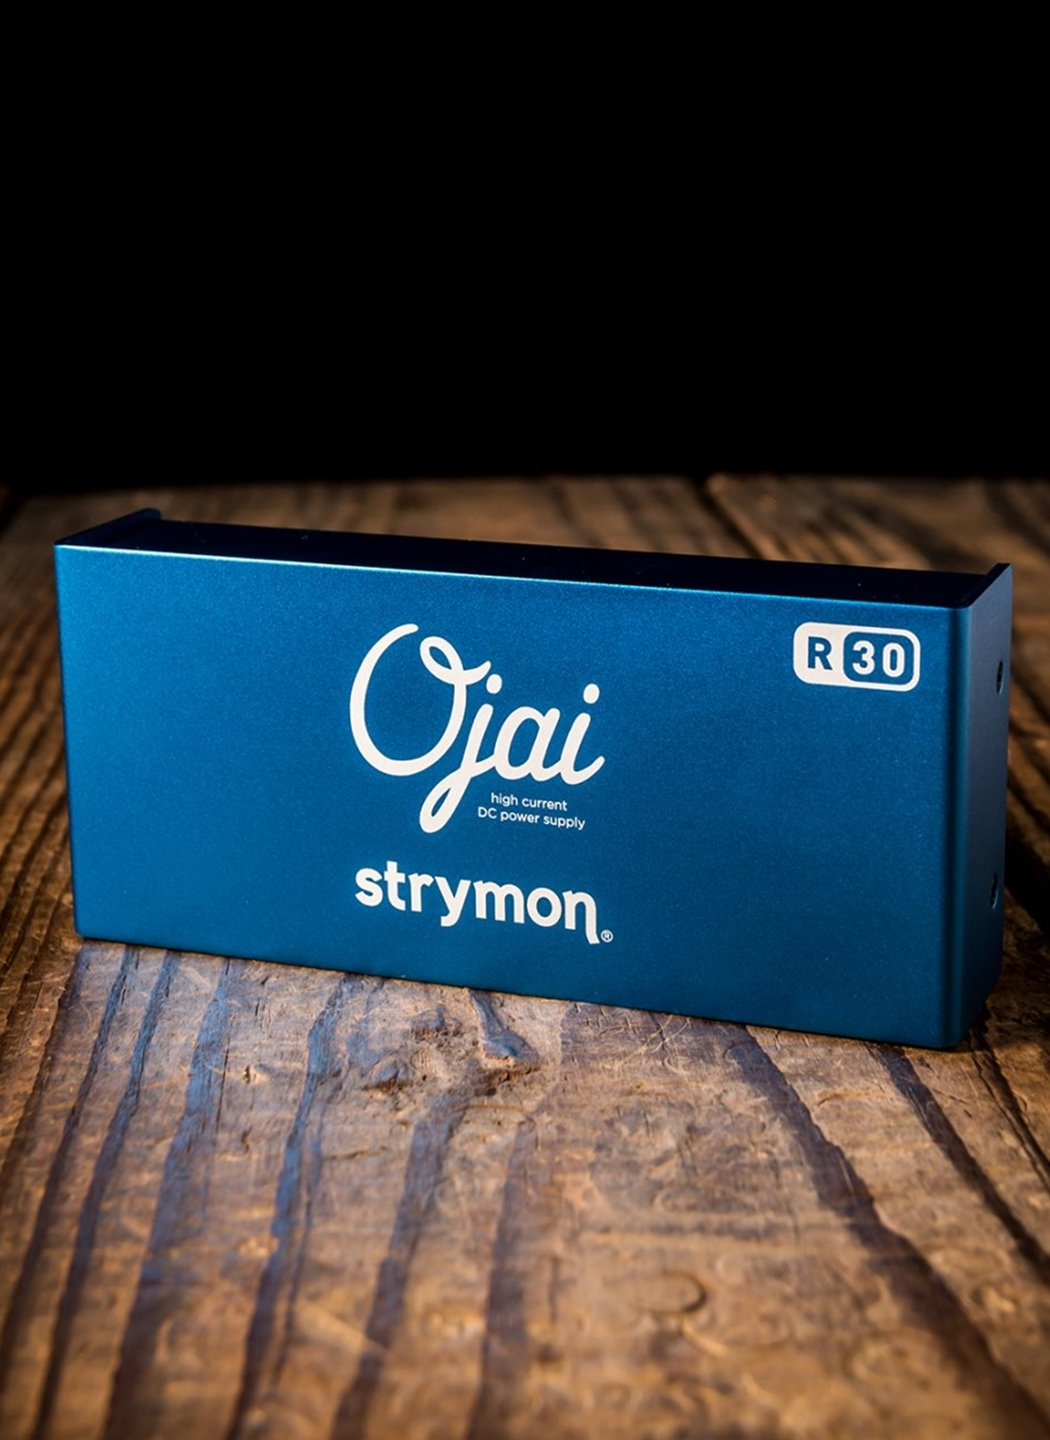 Strymon Ojai R30 High Current Dc Pedal Power Supply Tap To Expand